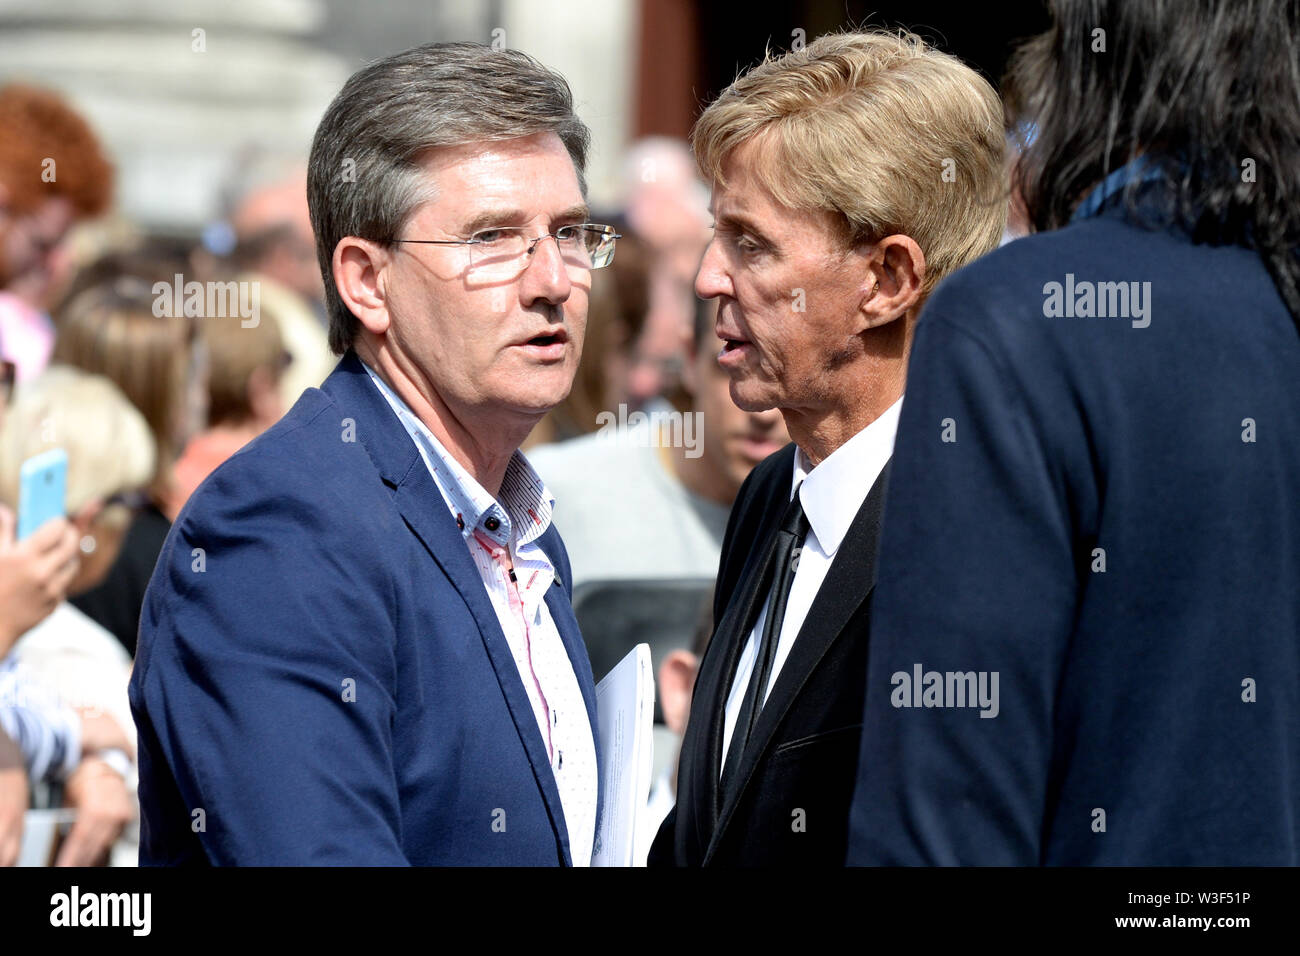 Daniel O'Donnell and Dickie Rock arrive for the funeral of Father Ted star Brendan Grace at the Church of St. Nicholas of Myra, Dublin. - Stock Image